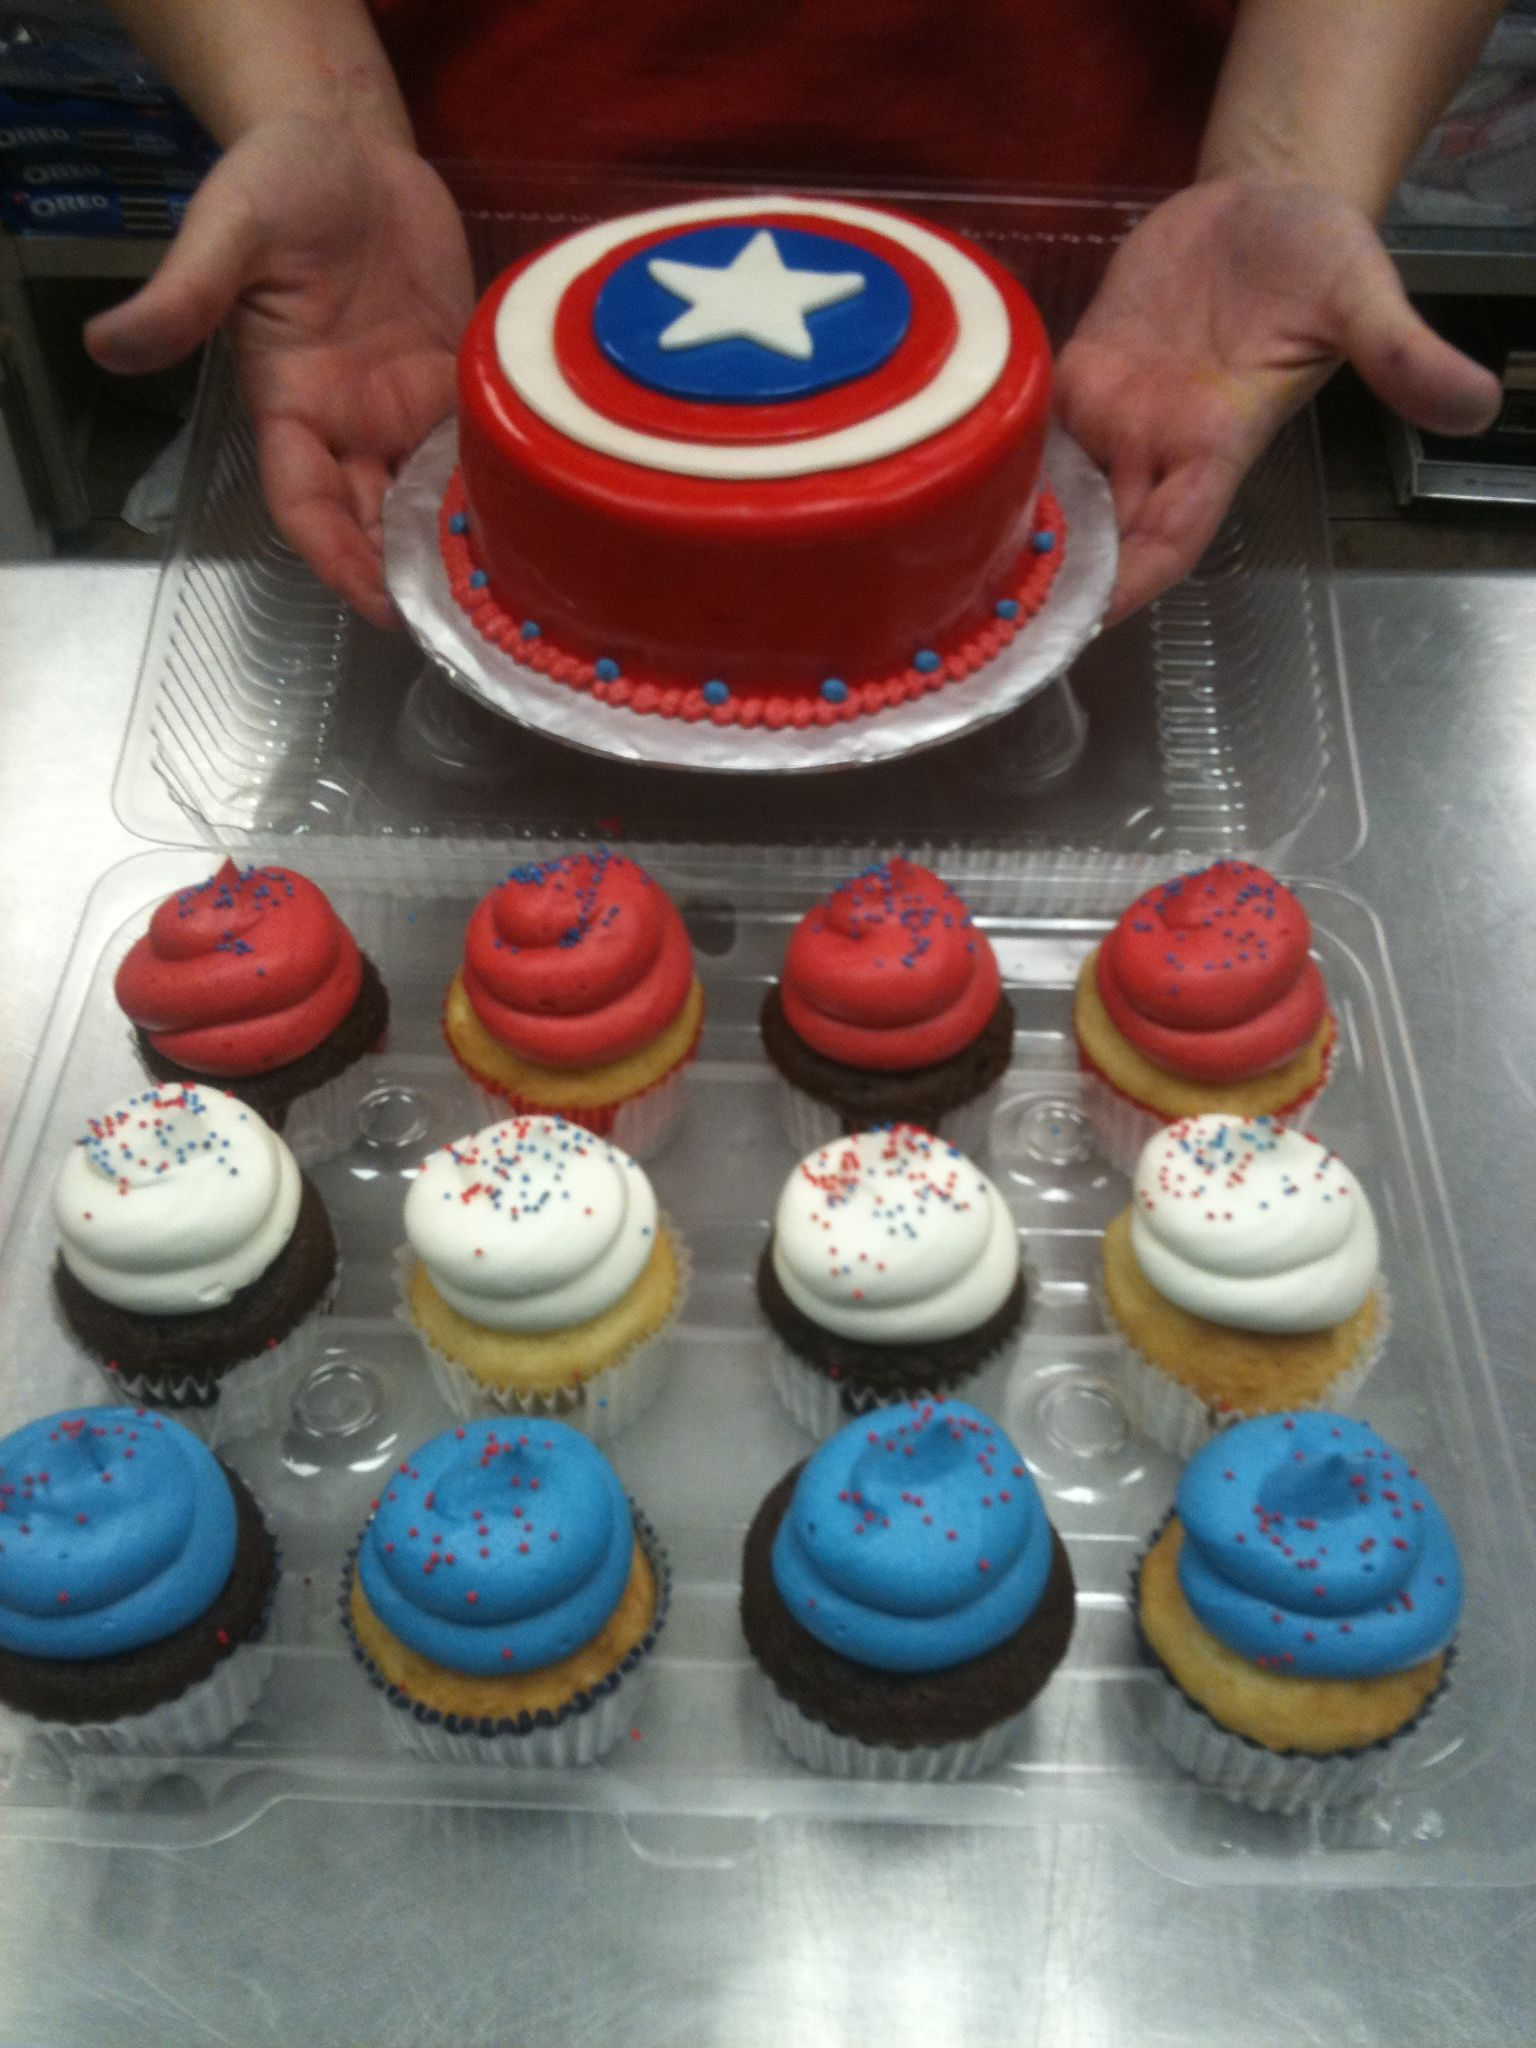 Captain America Smash Cake with matching Red White and Blue